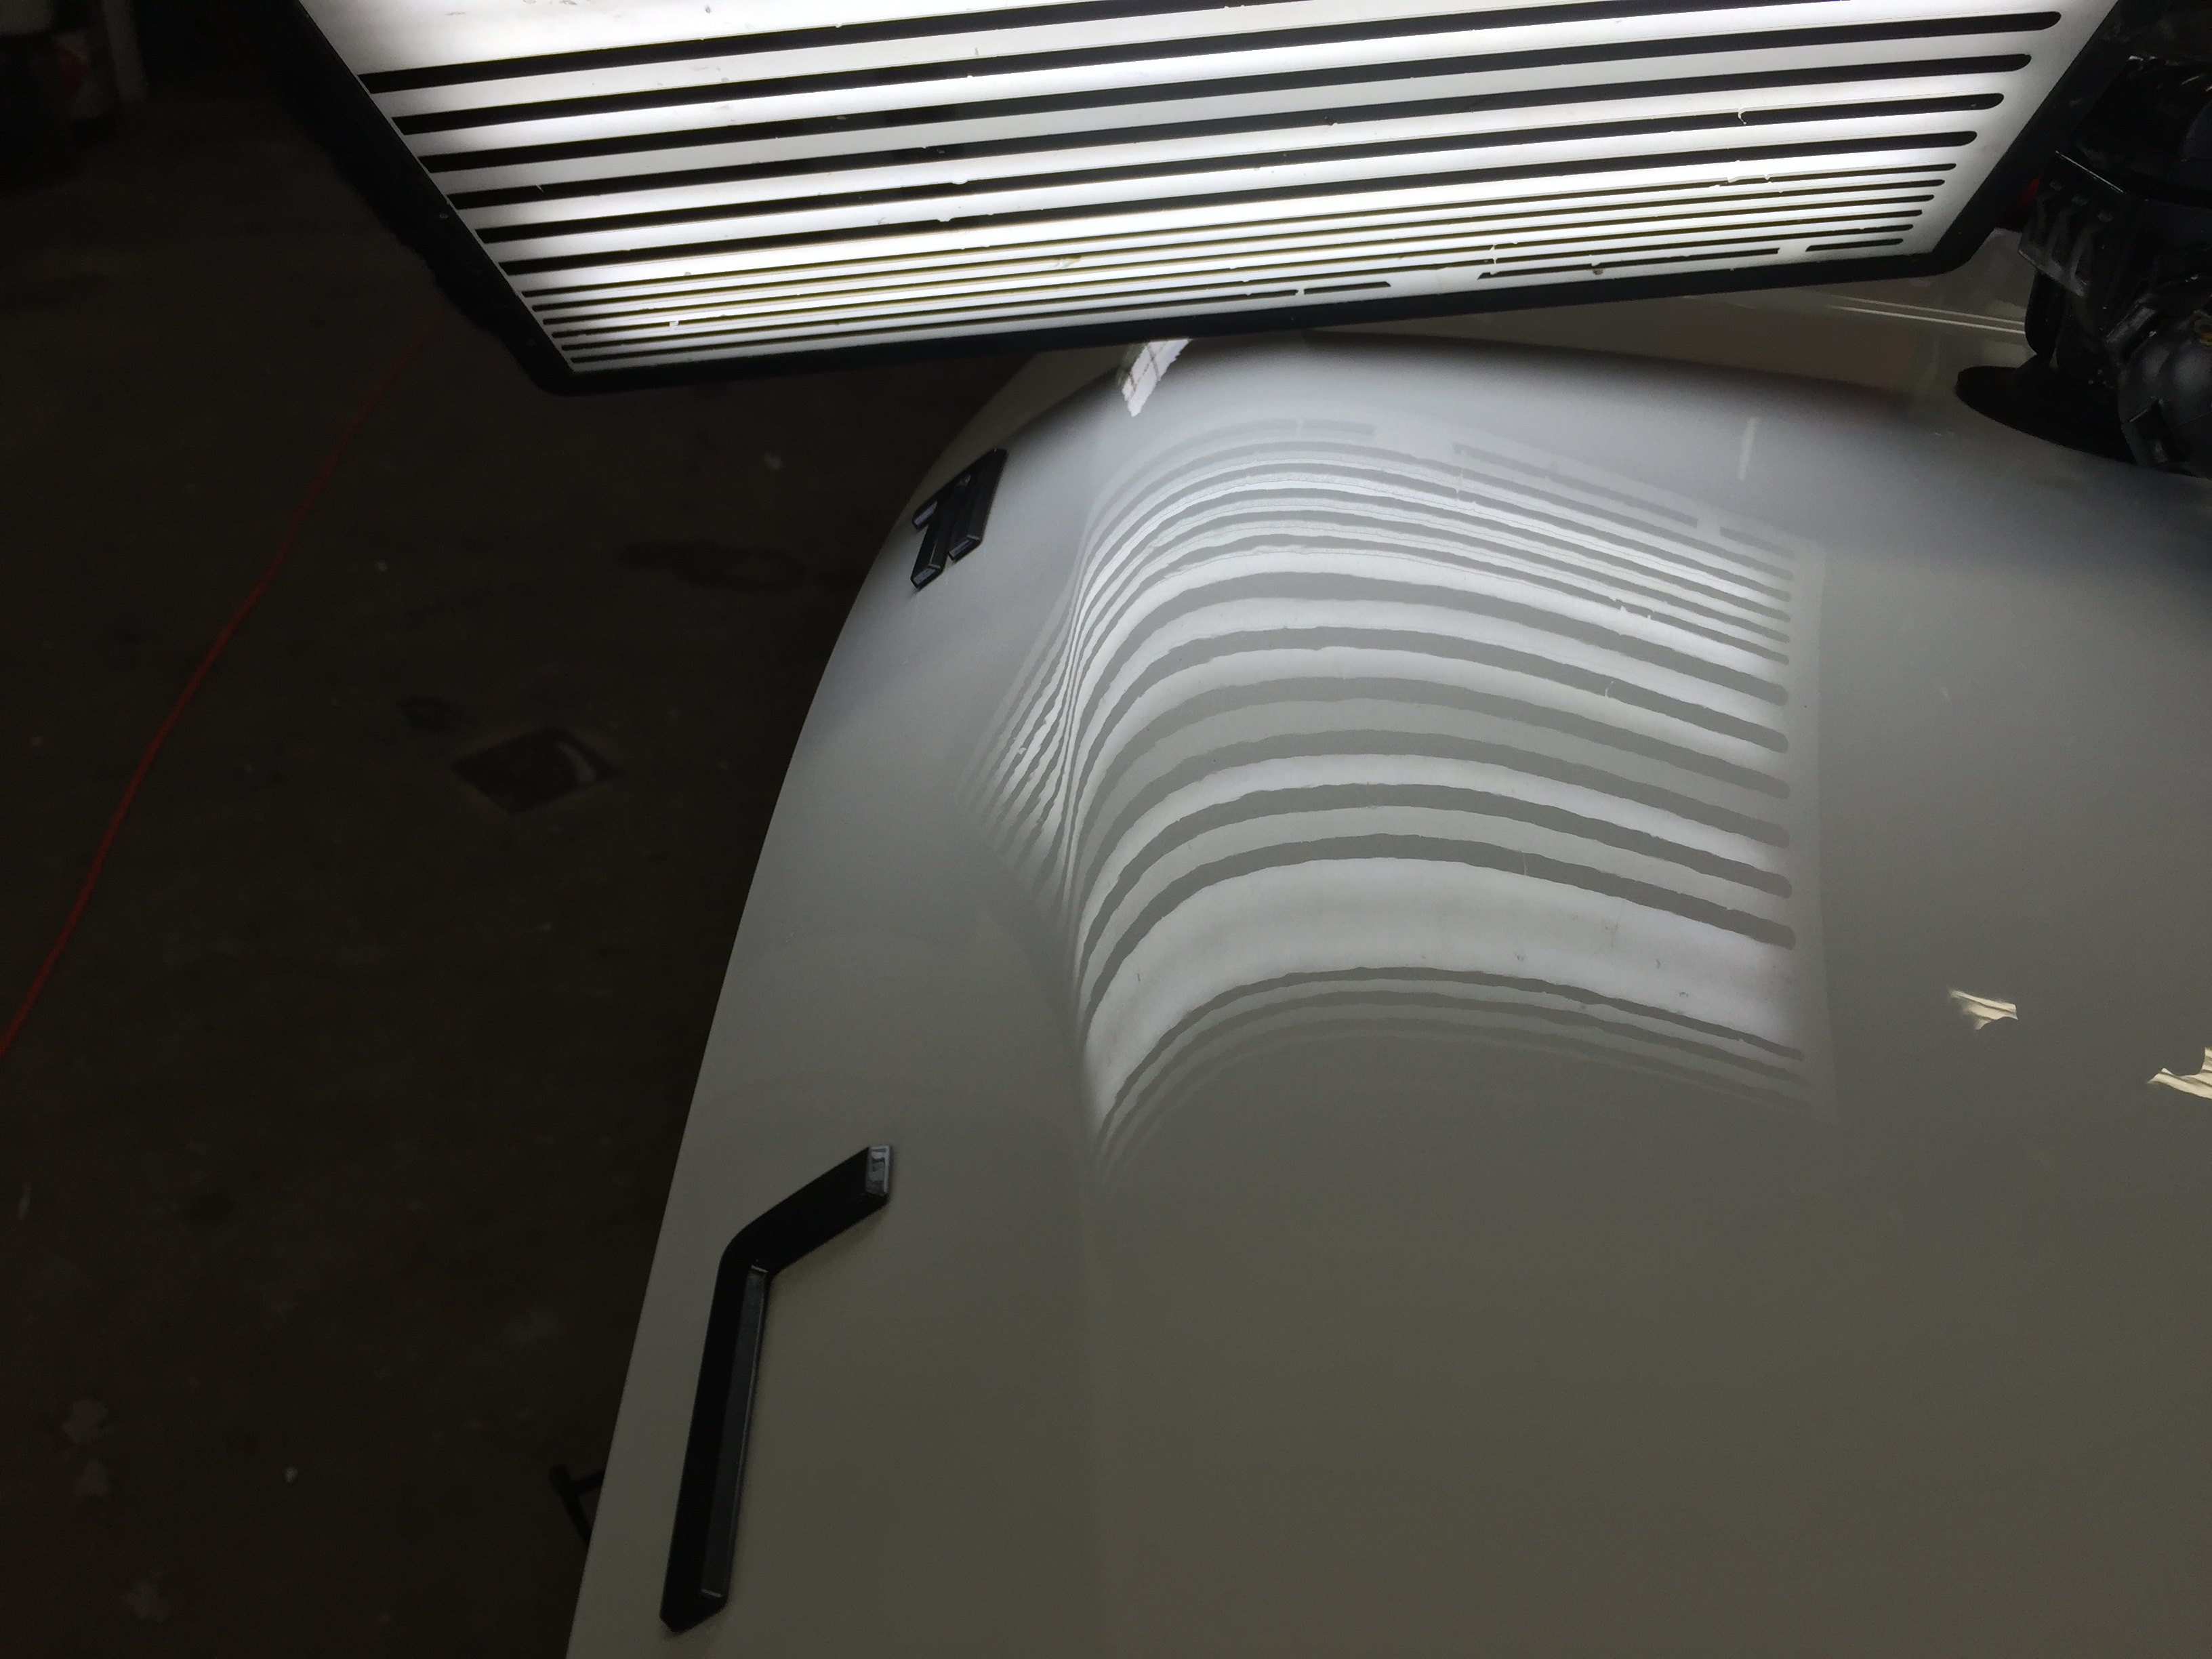 2015 Ford Flex, Paintless Dent Removal, Hood Damage, Springfield, IL. http://217dent.com